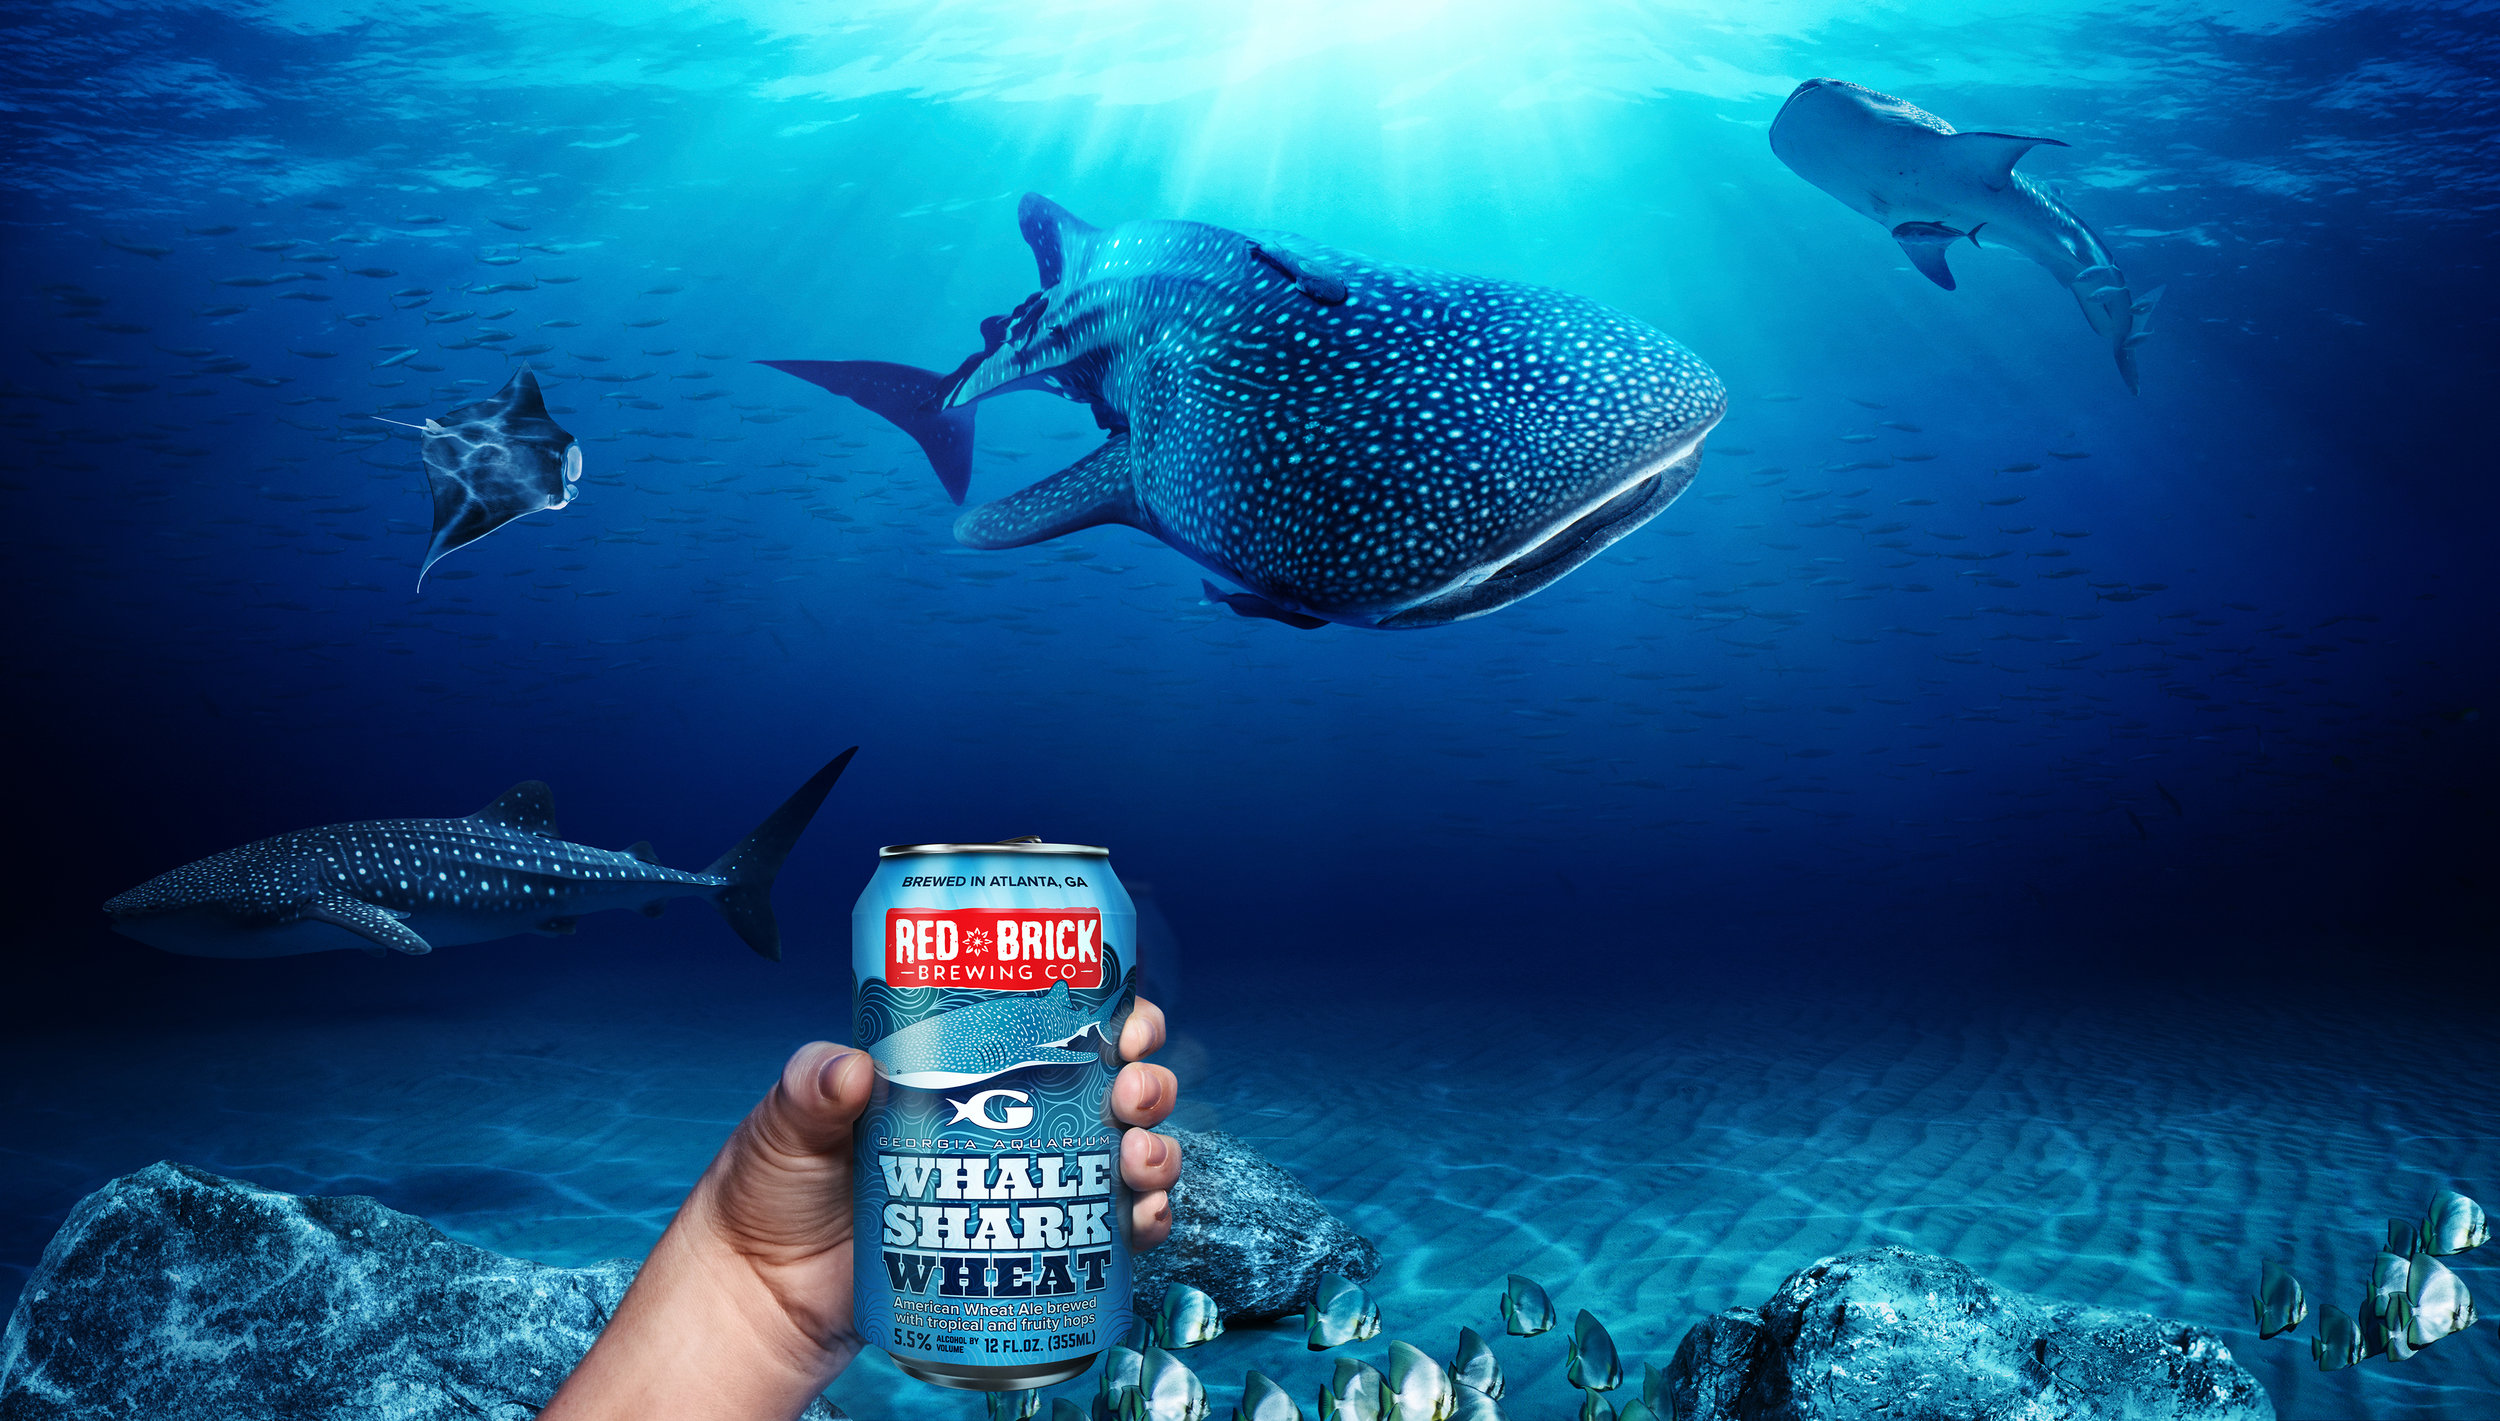 Sips_Tailgate_whalesharks_a@465.jpg